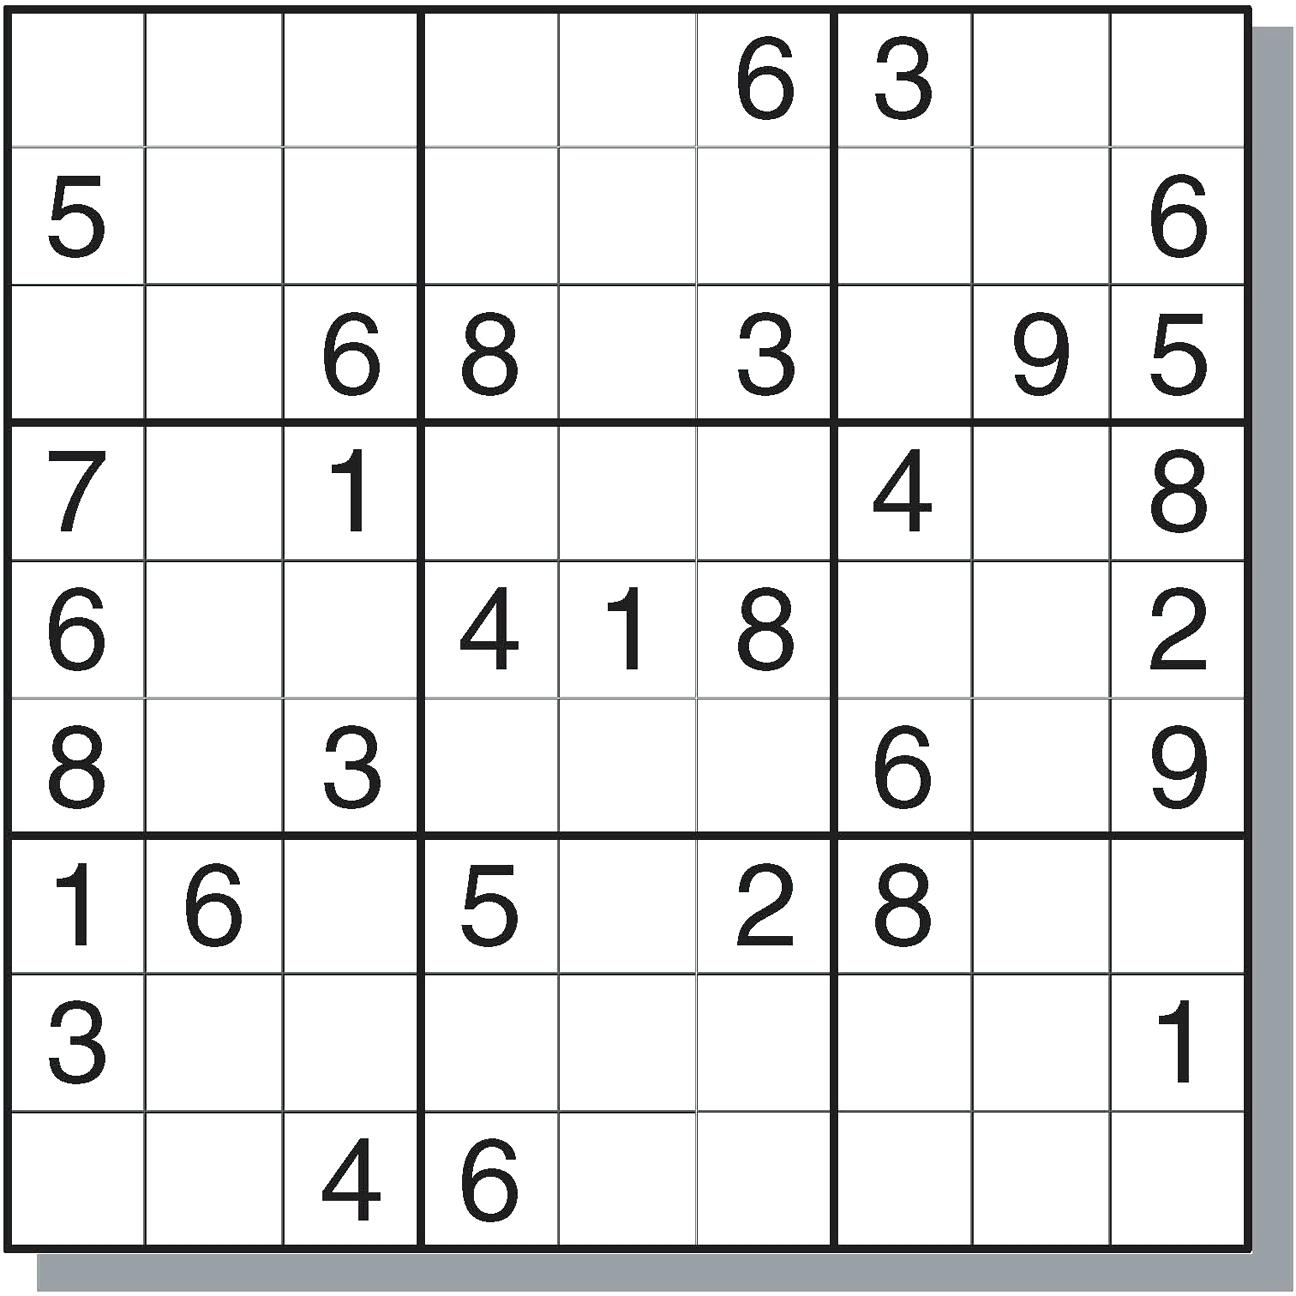 Sudoku Online - Ecosia - Free Printable Sudoku With Answers